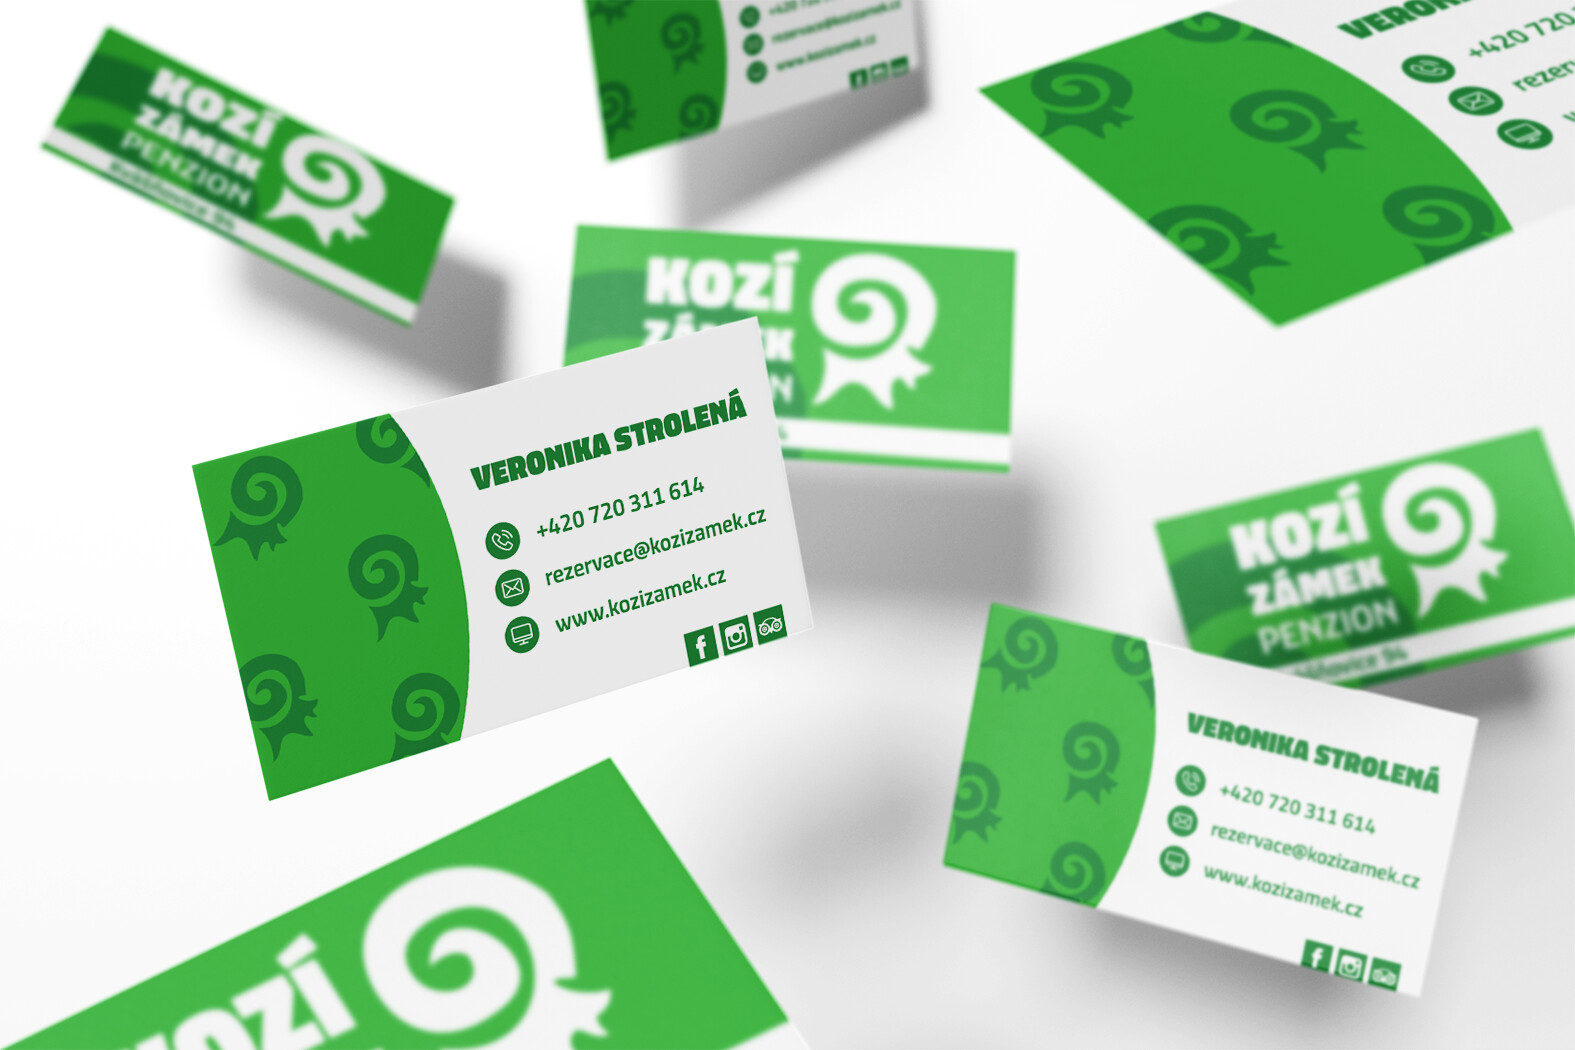 Business card | Kozí zámek